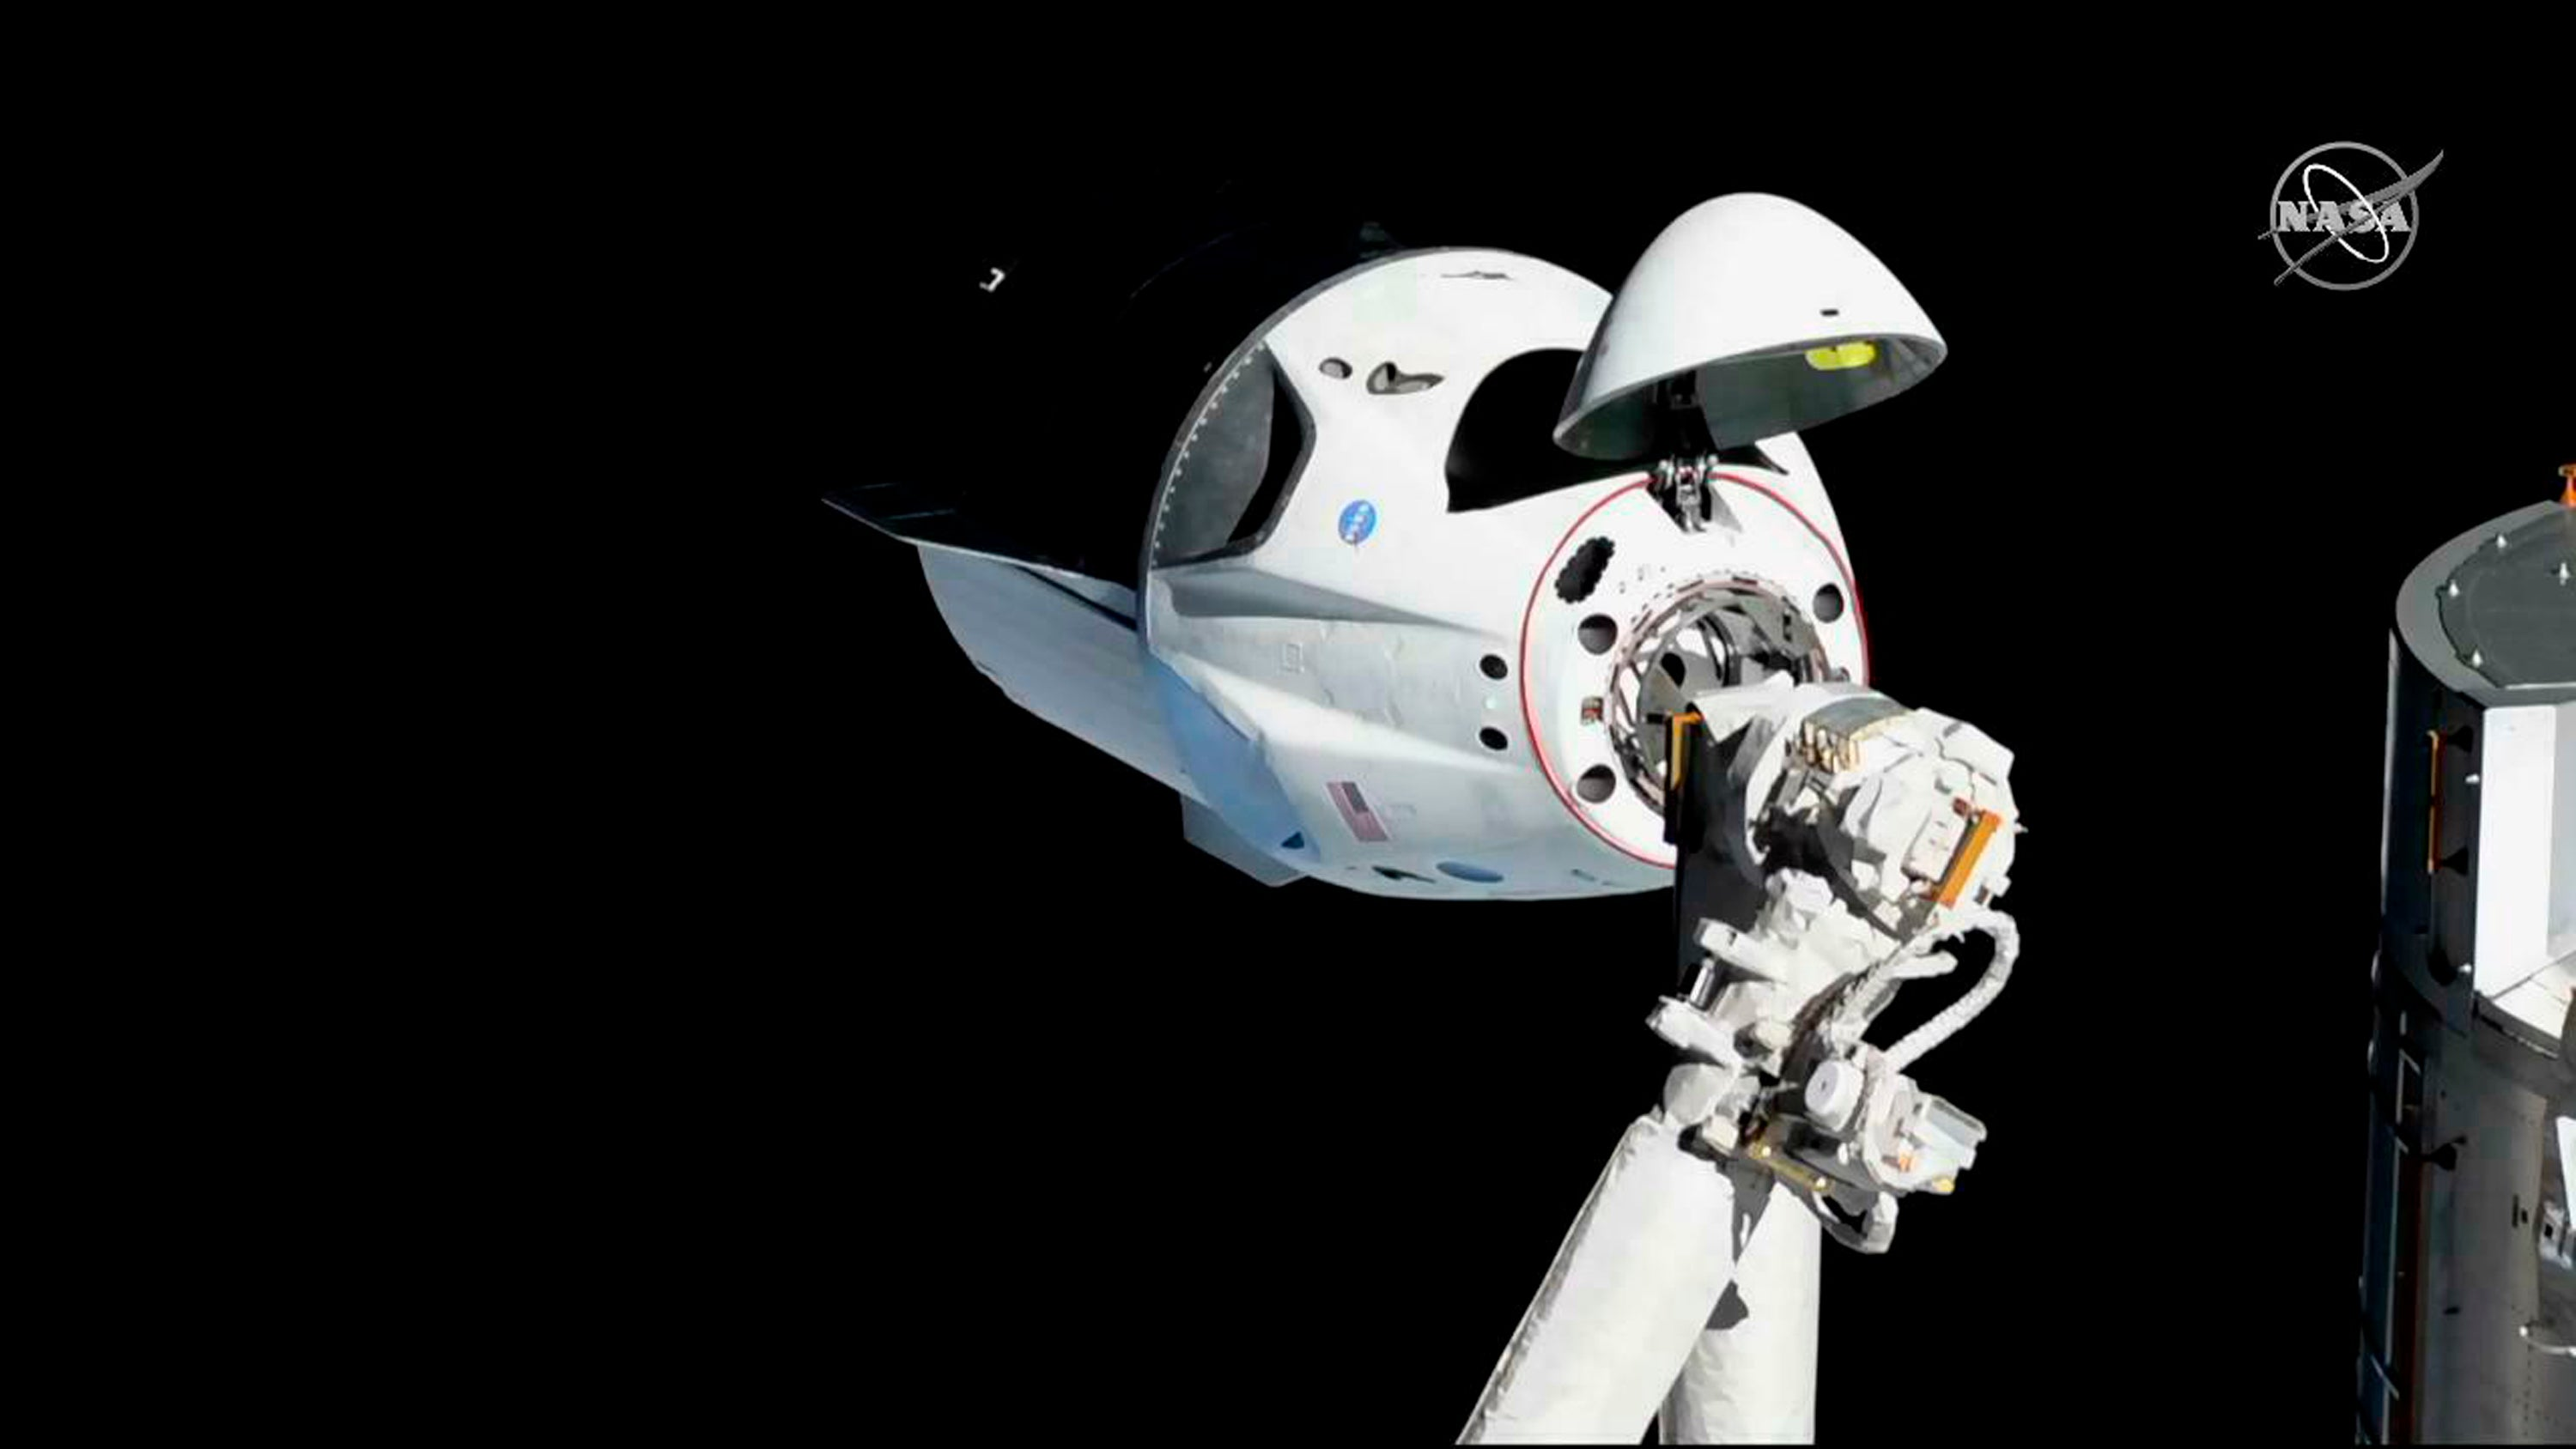 SpaceX's Crew Dragon Suffers 'Anomaly' During Testing At Cape Canaveral